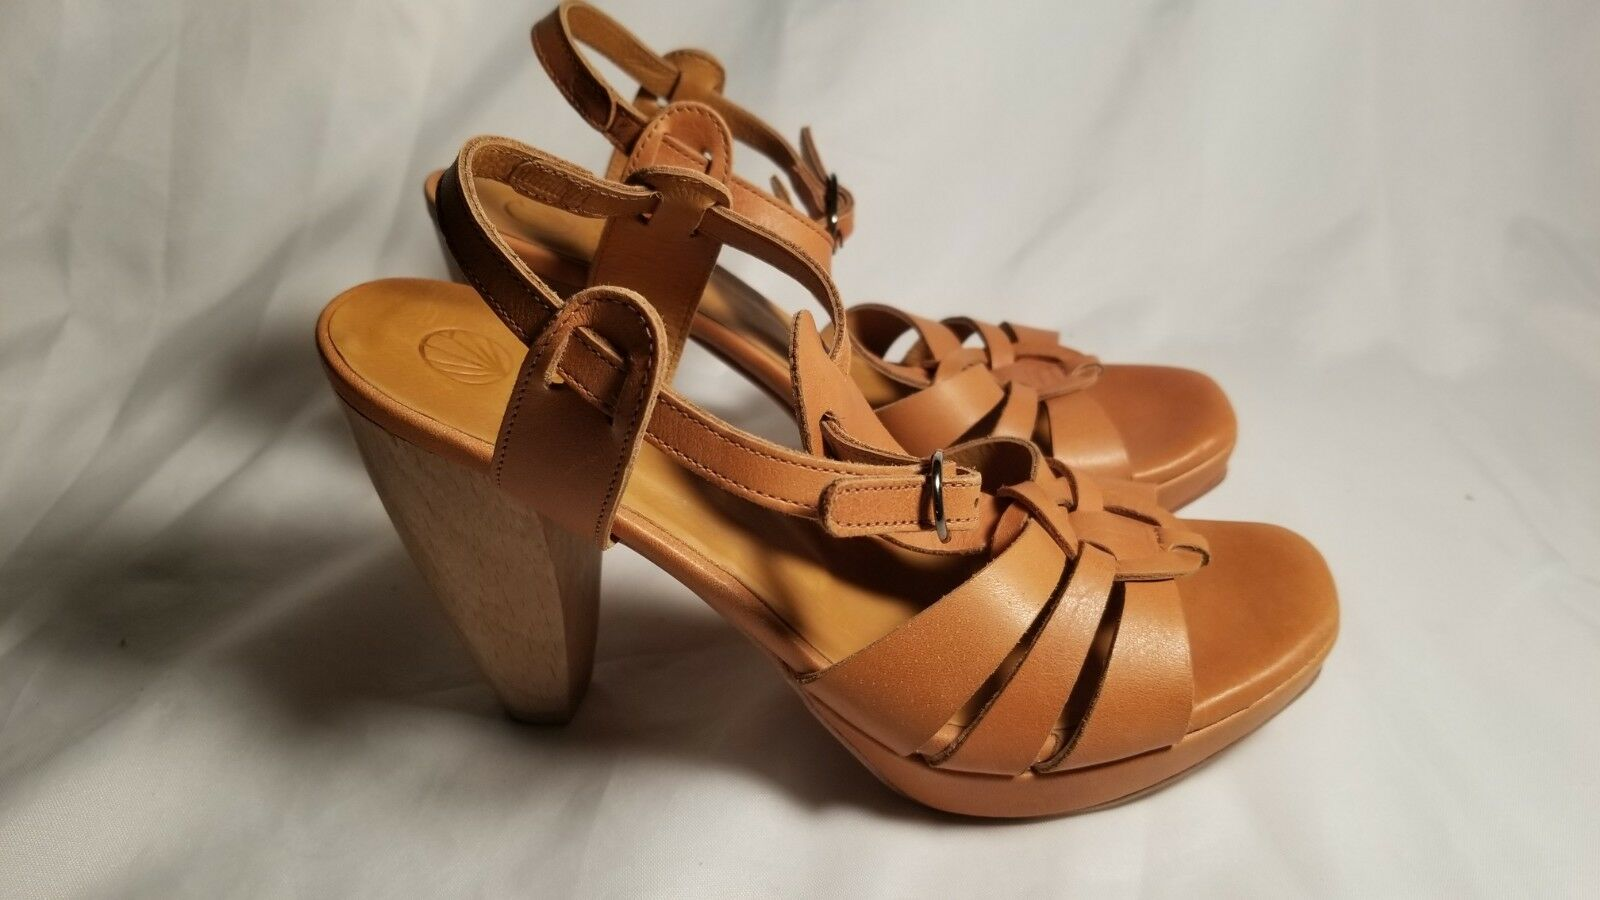 6.5 6.5 6.5  36.5 Coclico donna Heel Sandals Marronee Leather Ankle Strap b156a3